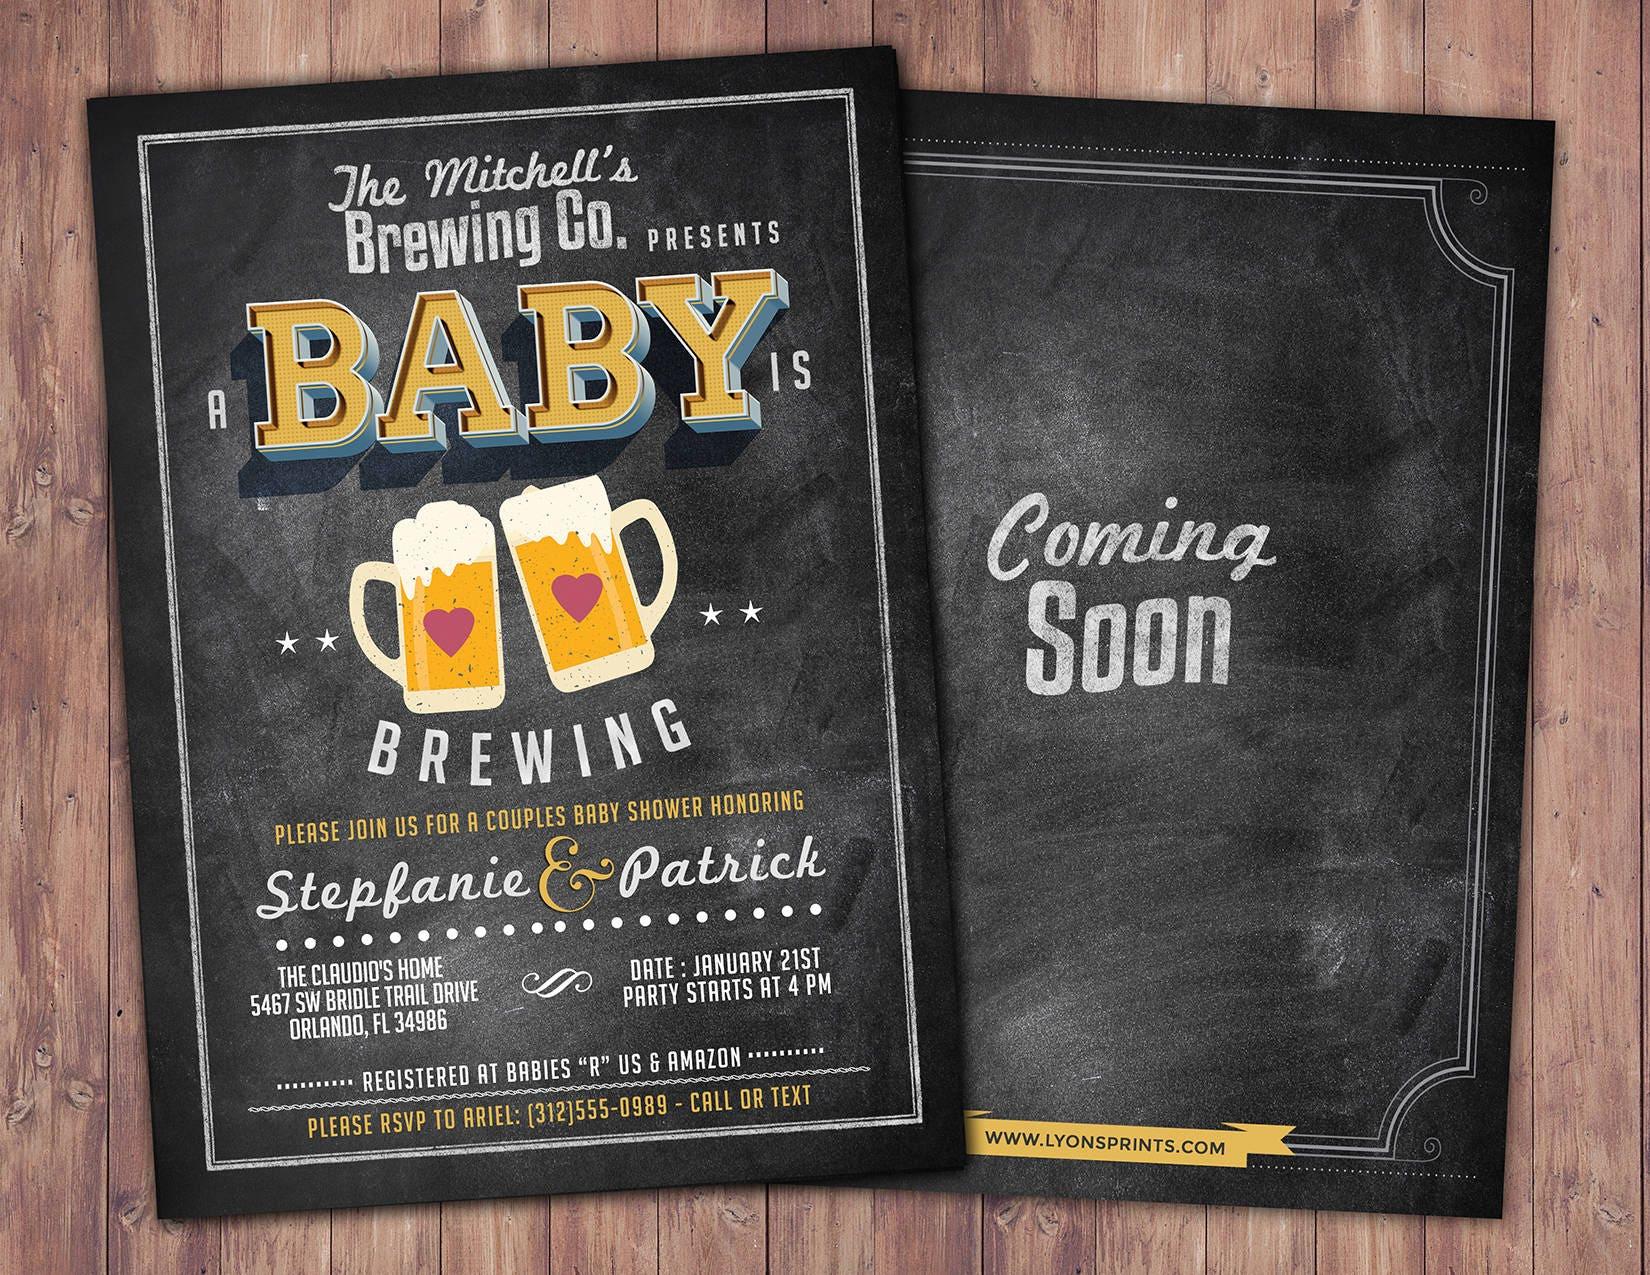 Baby Is Brewing, Coed Baby Shower Invitation  Beer Baby Shower Invitation   Couples Baby Shower   Girl Baby Shower   Boy Baby Shower, BBQ